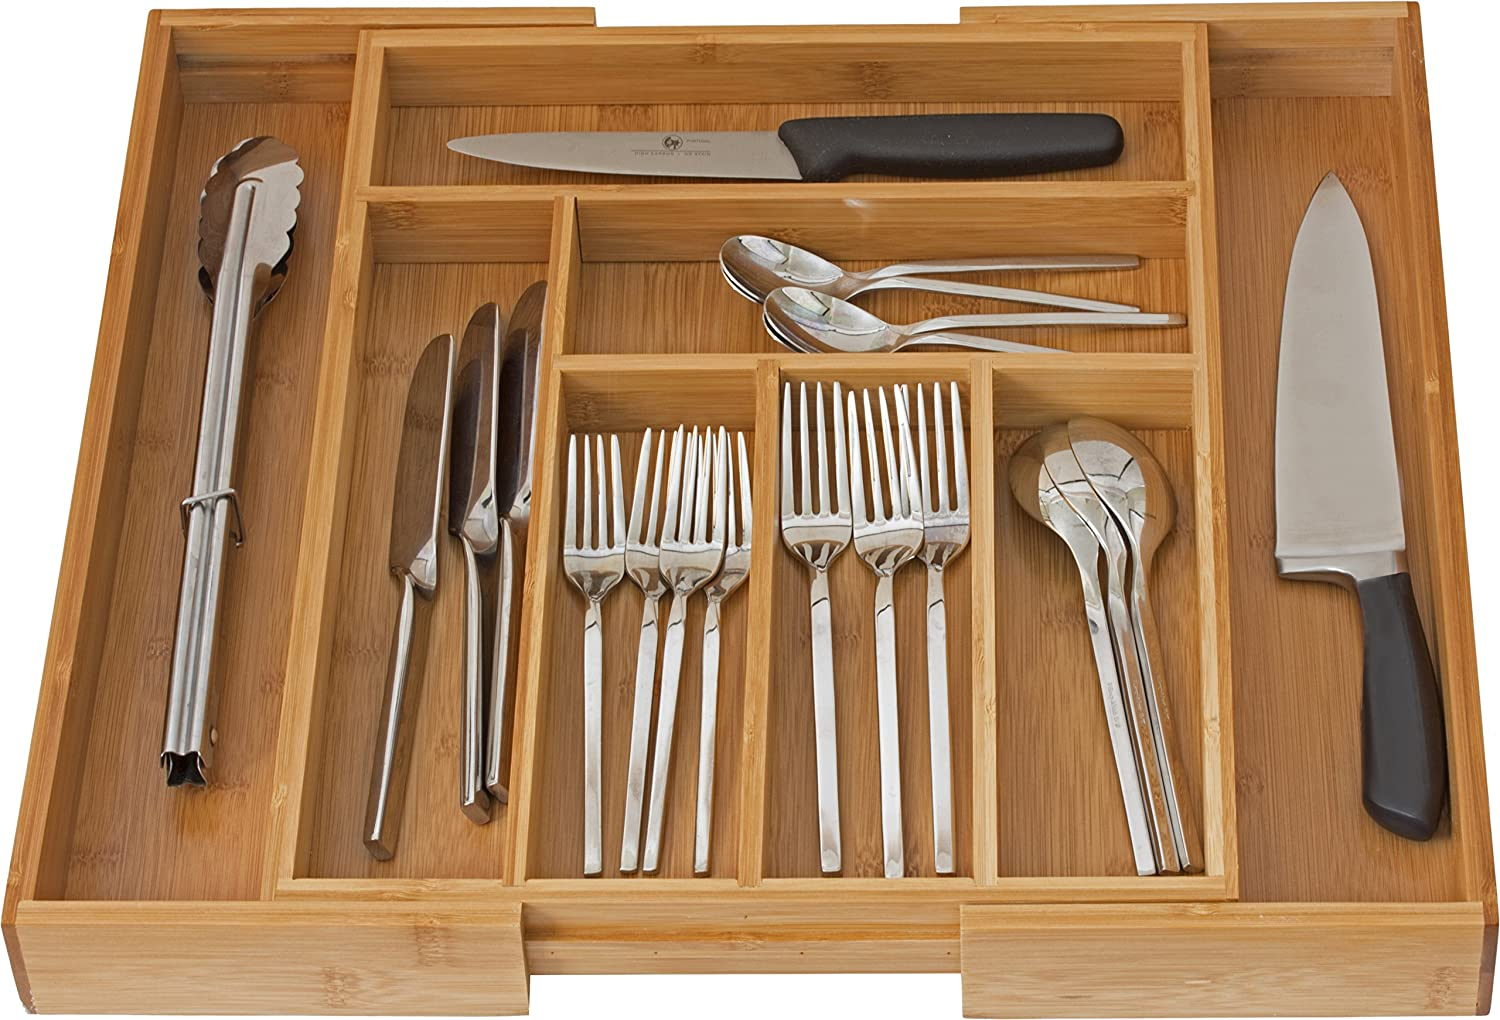 Home-it Expandable Cutlery Drawer Use for, Utensil Organizer Flatware Dividers-Kitchen Holder SYNCHKG057621